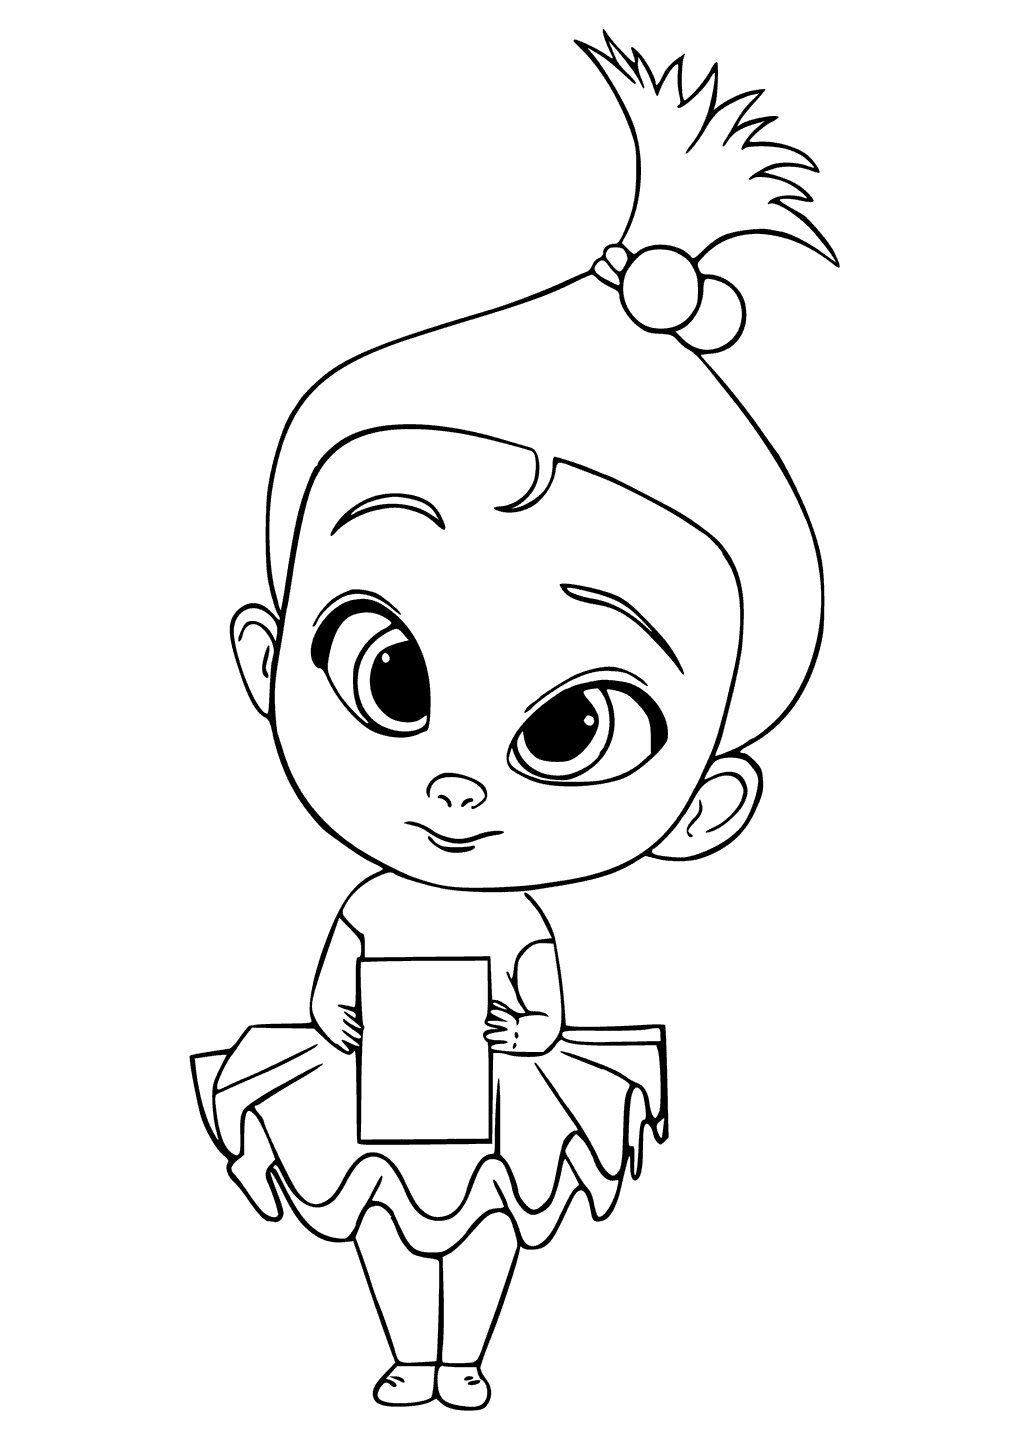 Boss Baby Coloring Pages Best Coloring Pages For Kids Baby Coloring Pages Family Coloring Pages Coloring Books